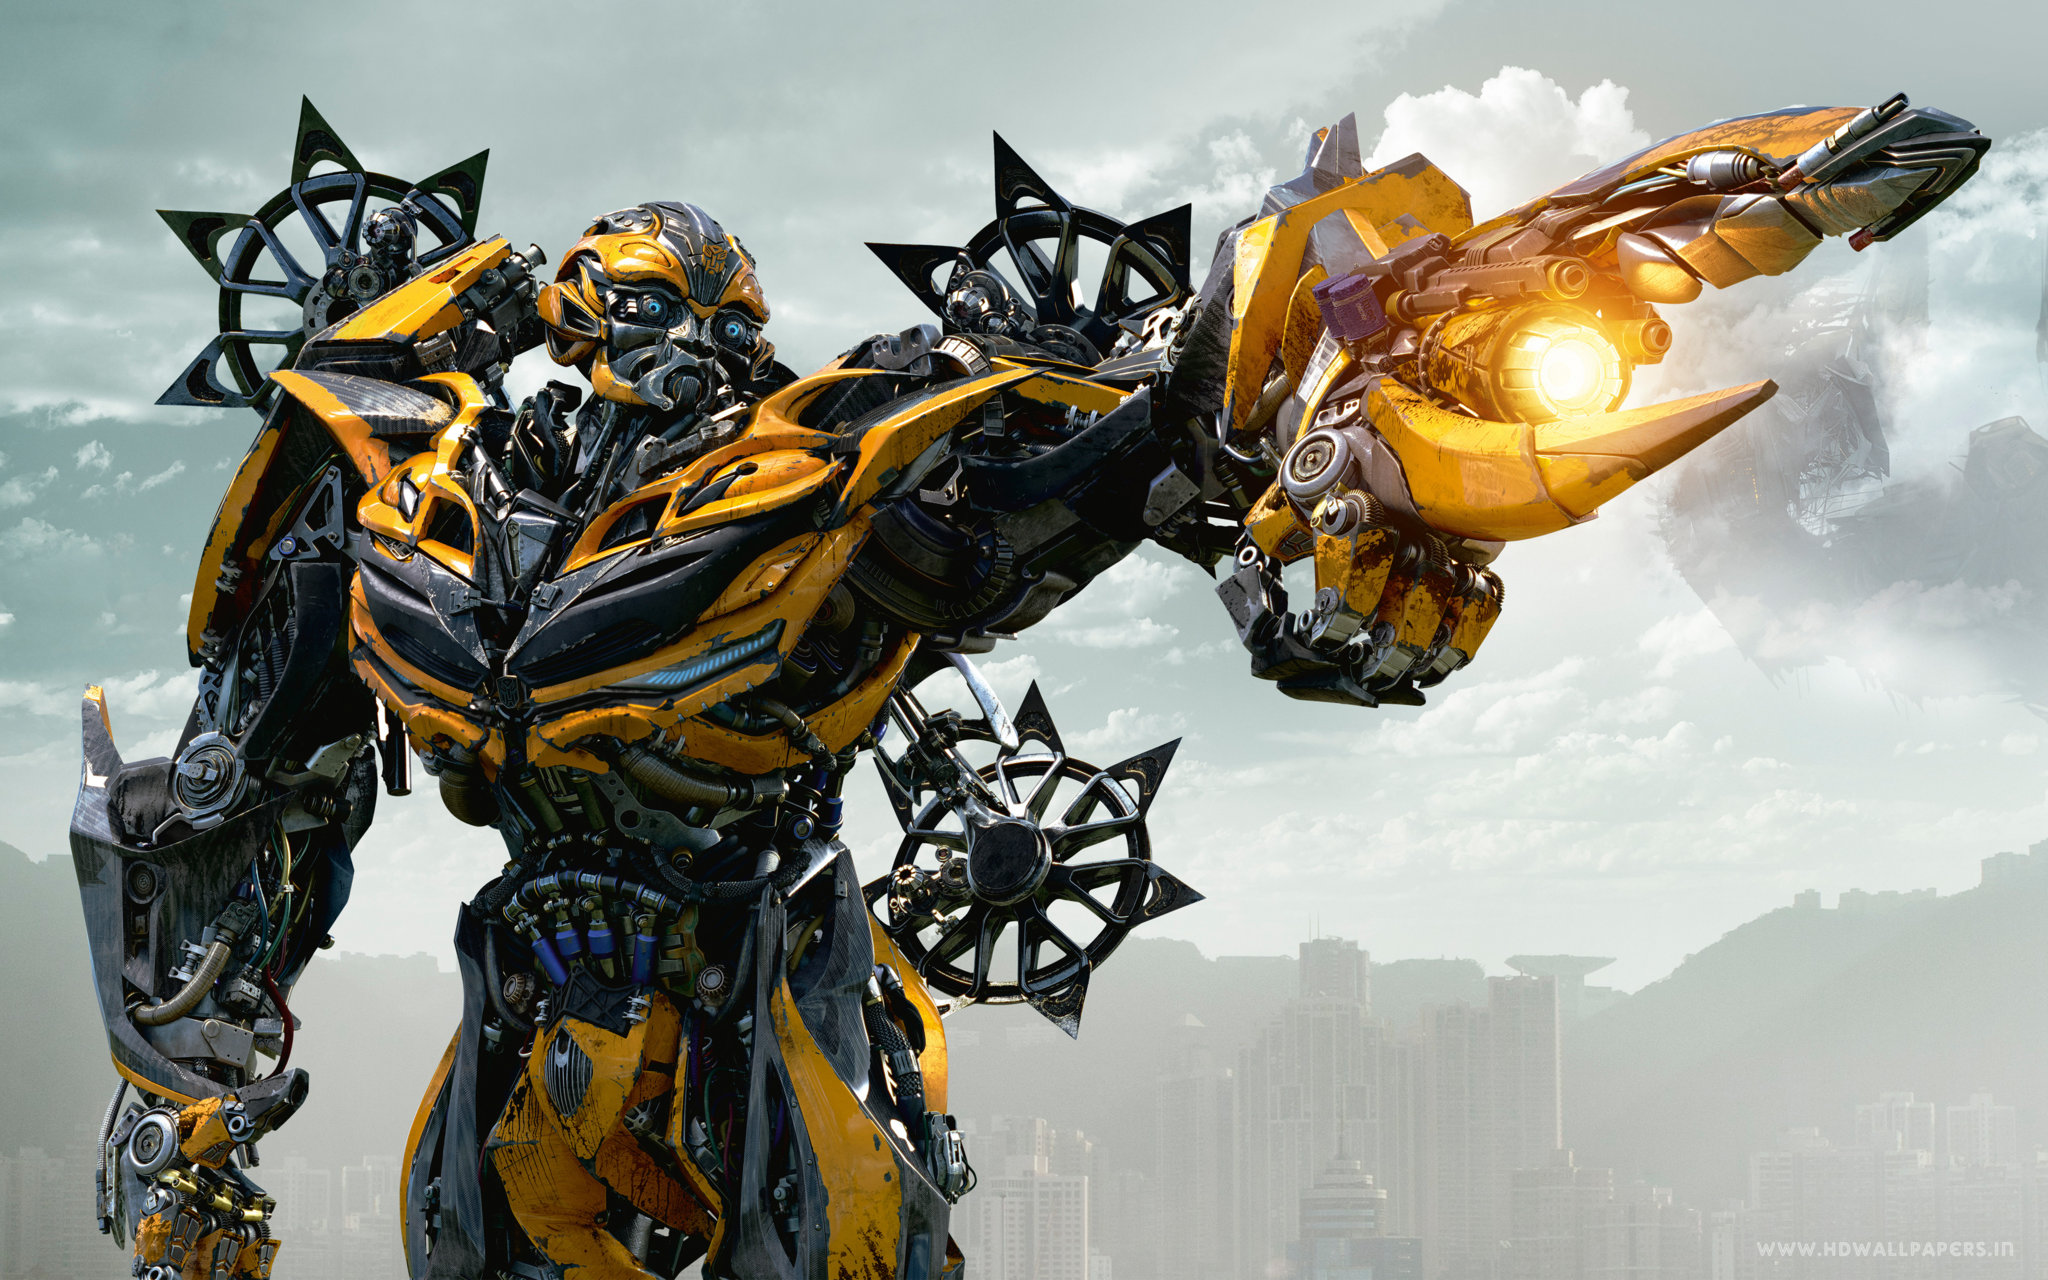 bumblebee_in_transformers_4_age_of_extinction-wide[1].jpg